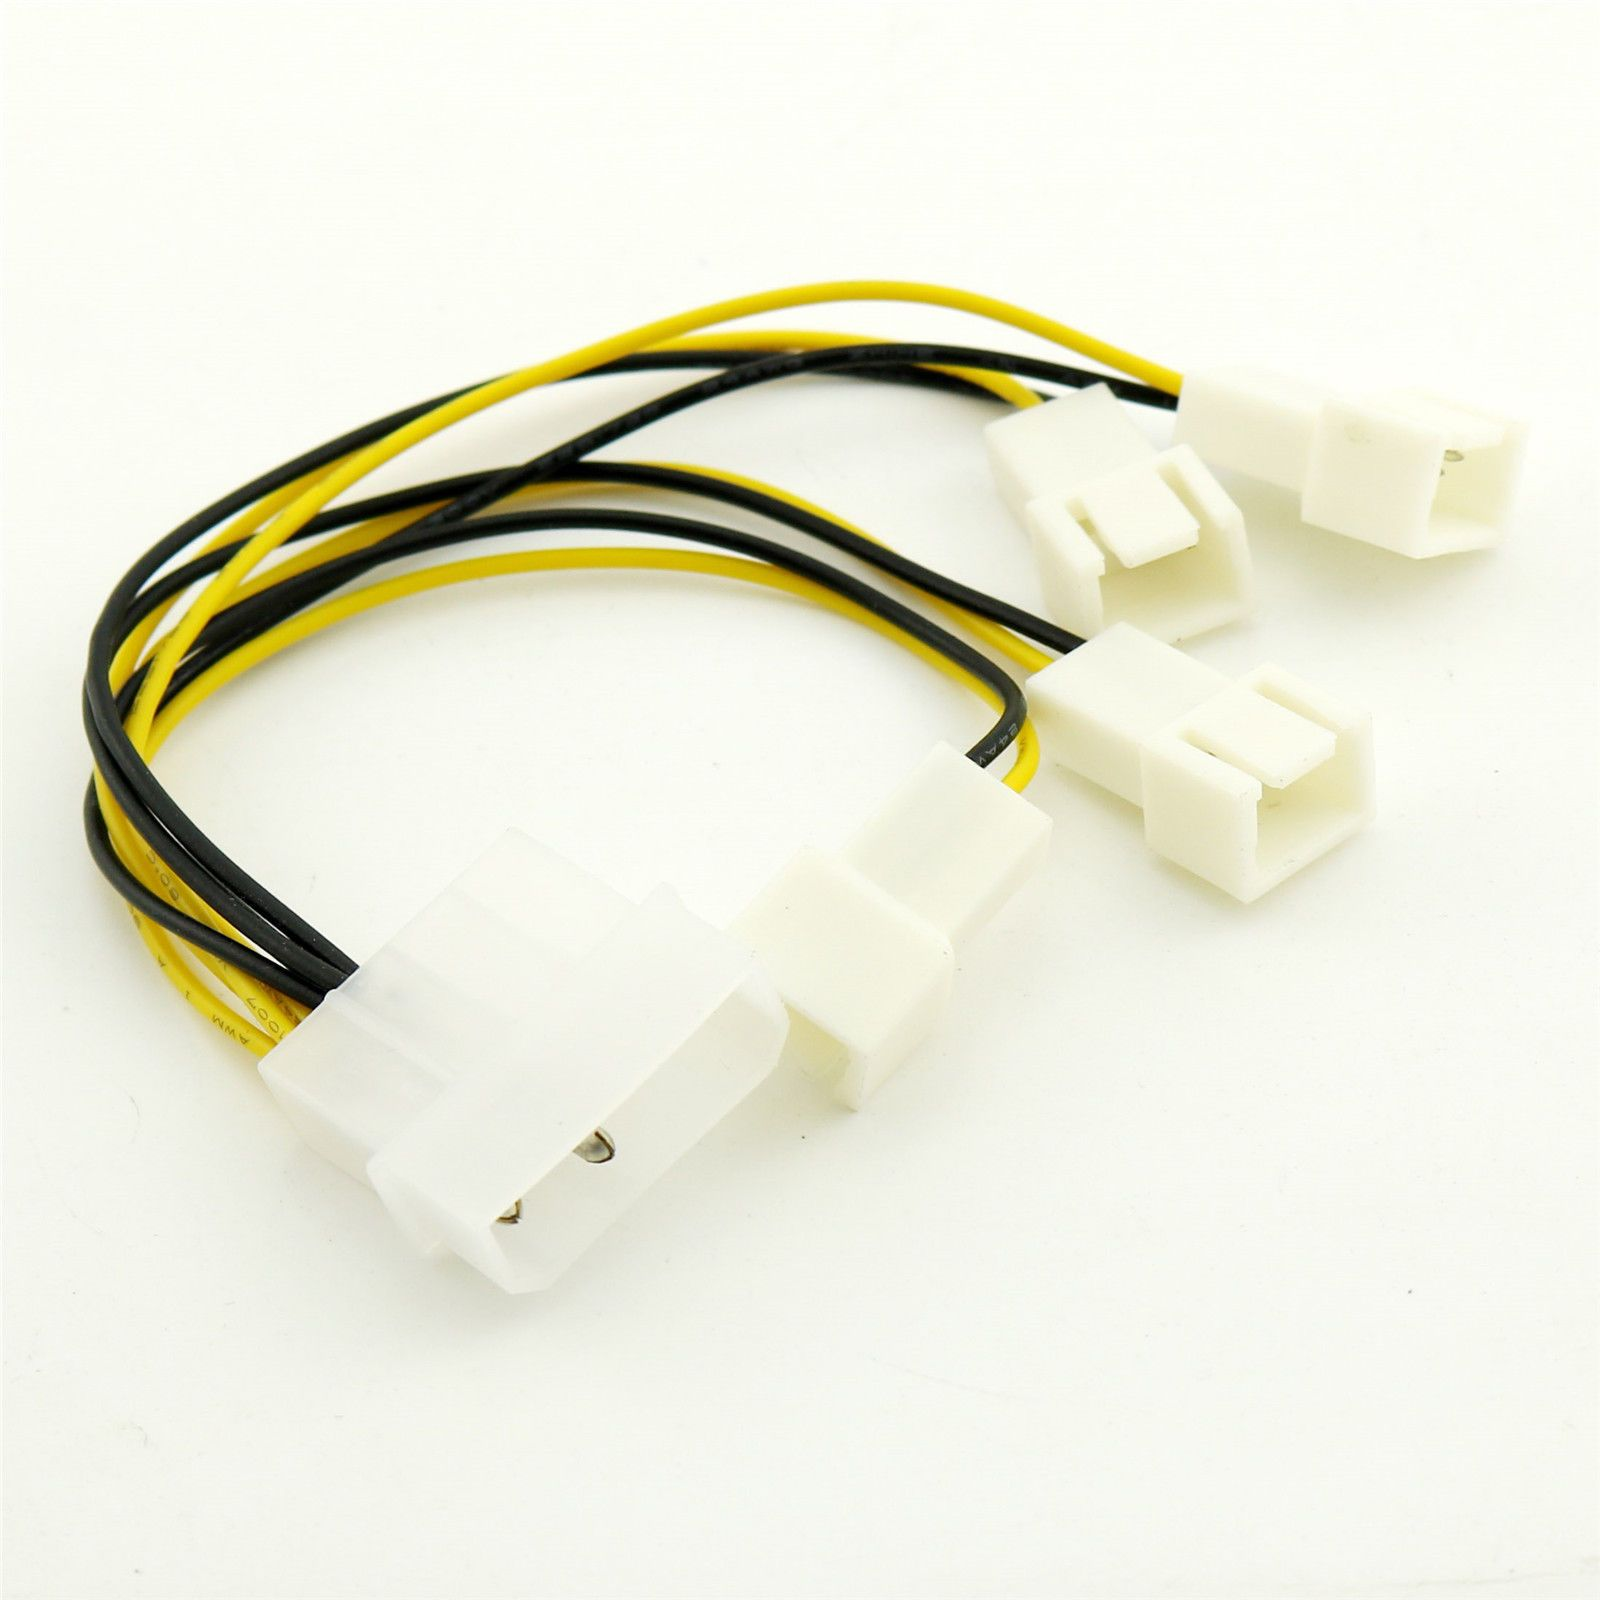 small resolution of  1 39 1pc molex male to 4 way 3 pin computer power multi fan splitter adapter